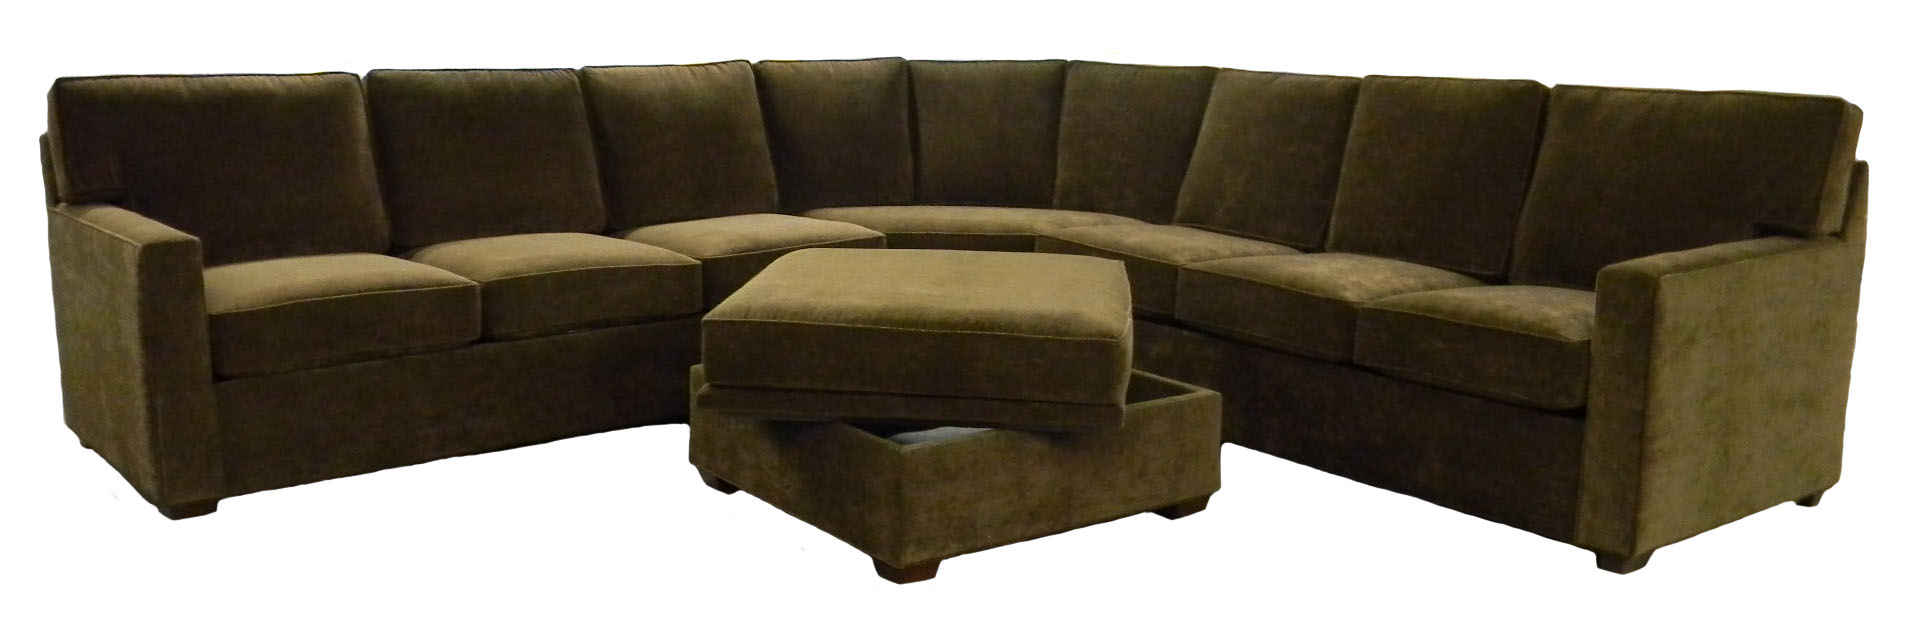 Large Sectional Sofas | Deep Seated Sofa | Couches for Cheap